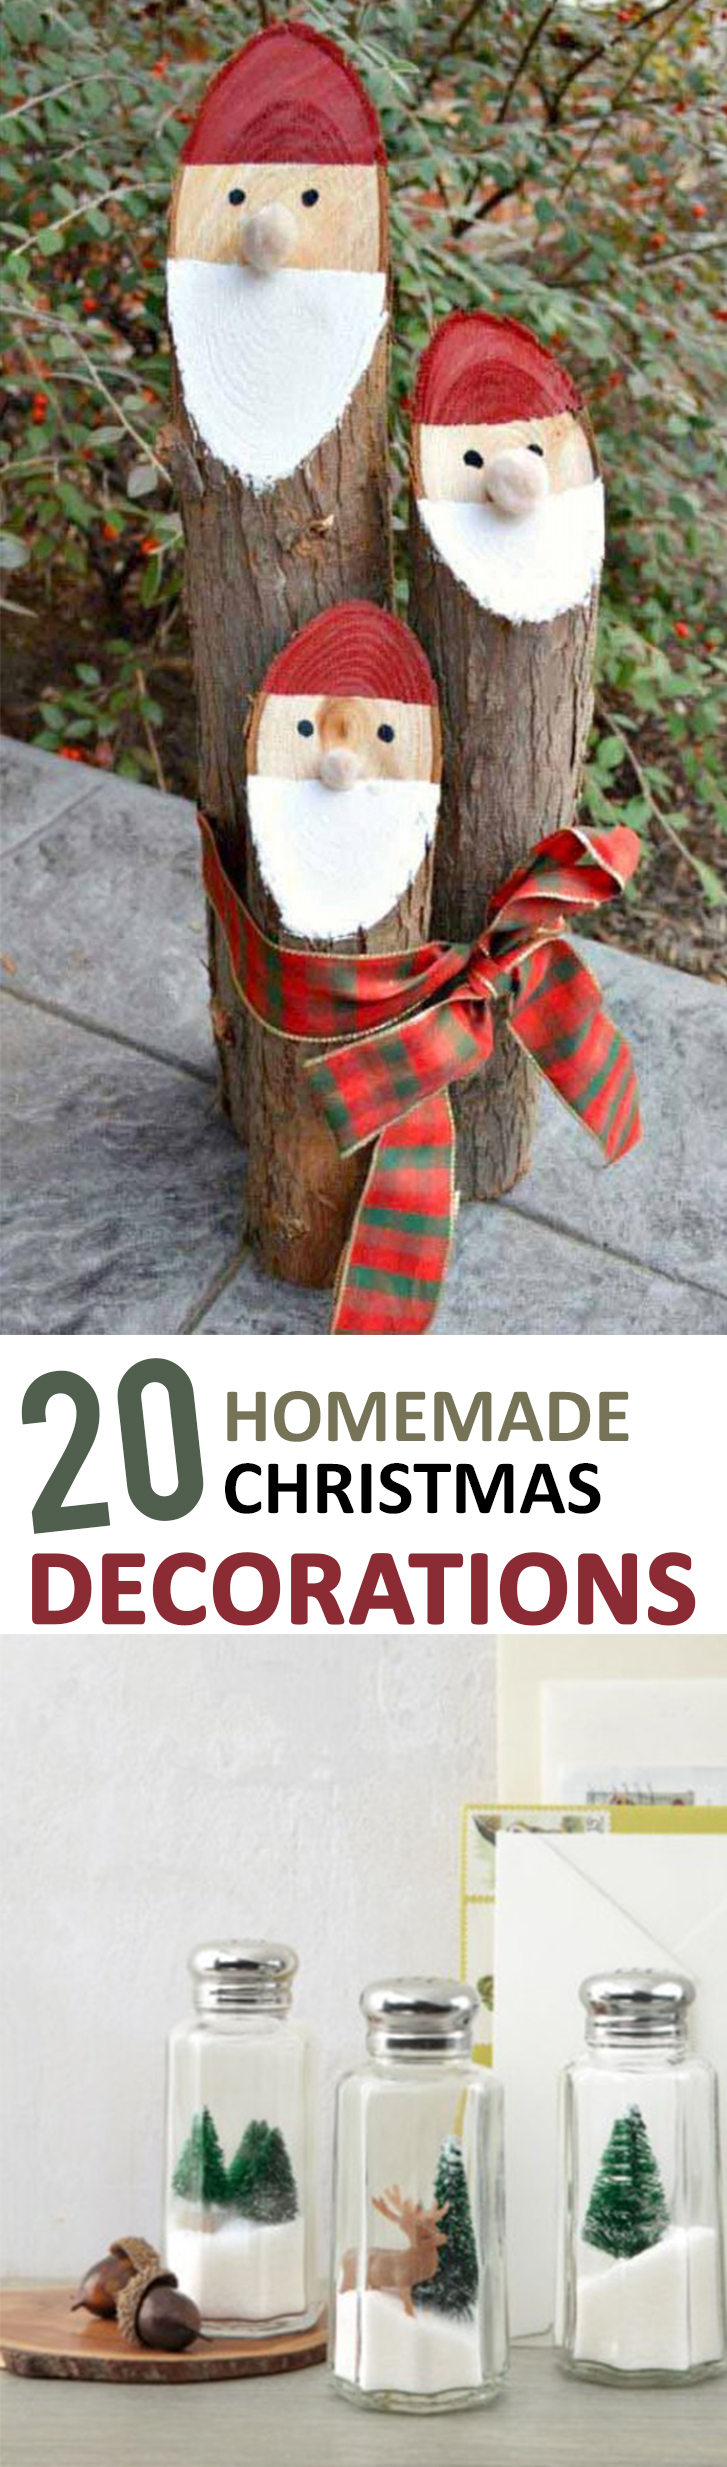 20 Homemade Christmas Decorations